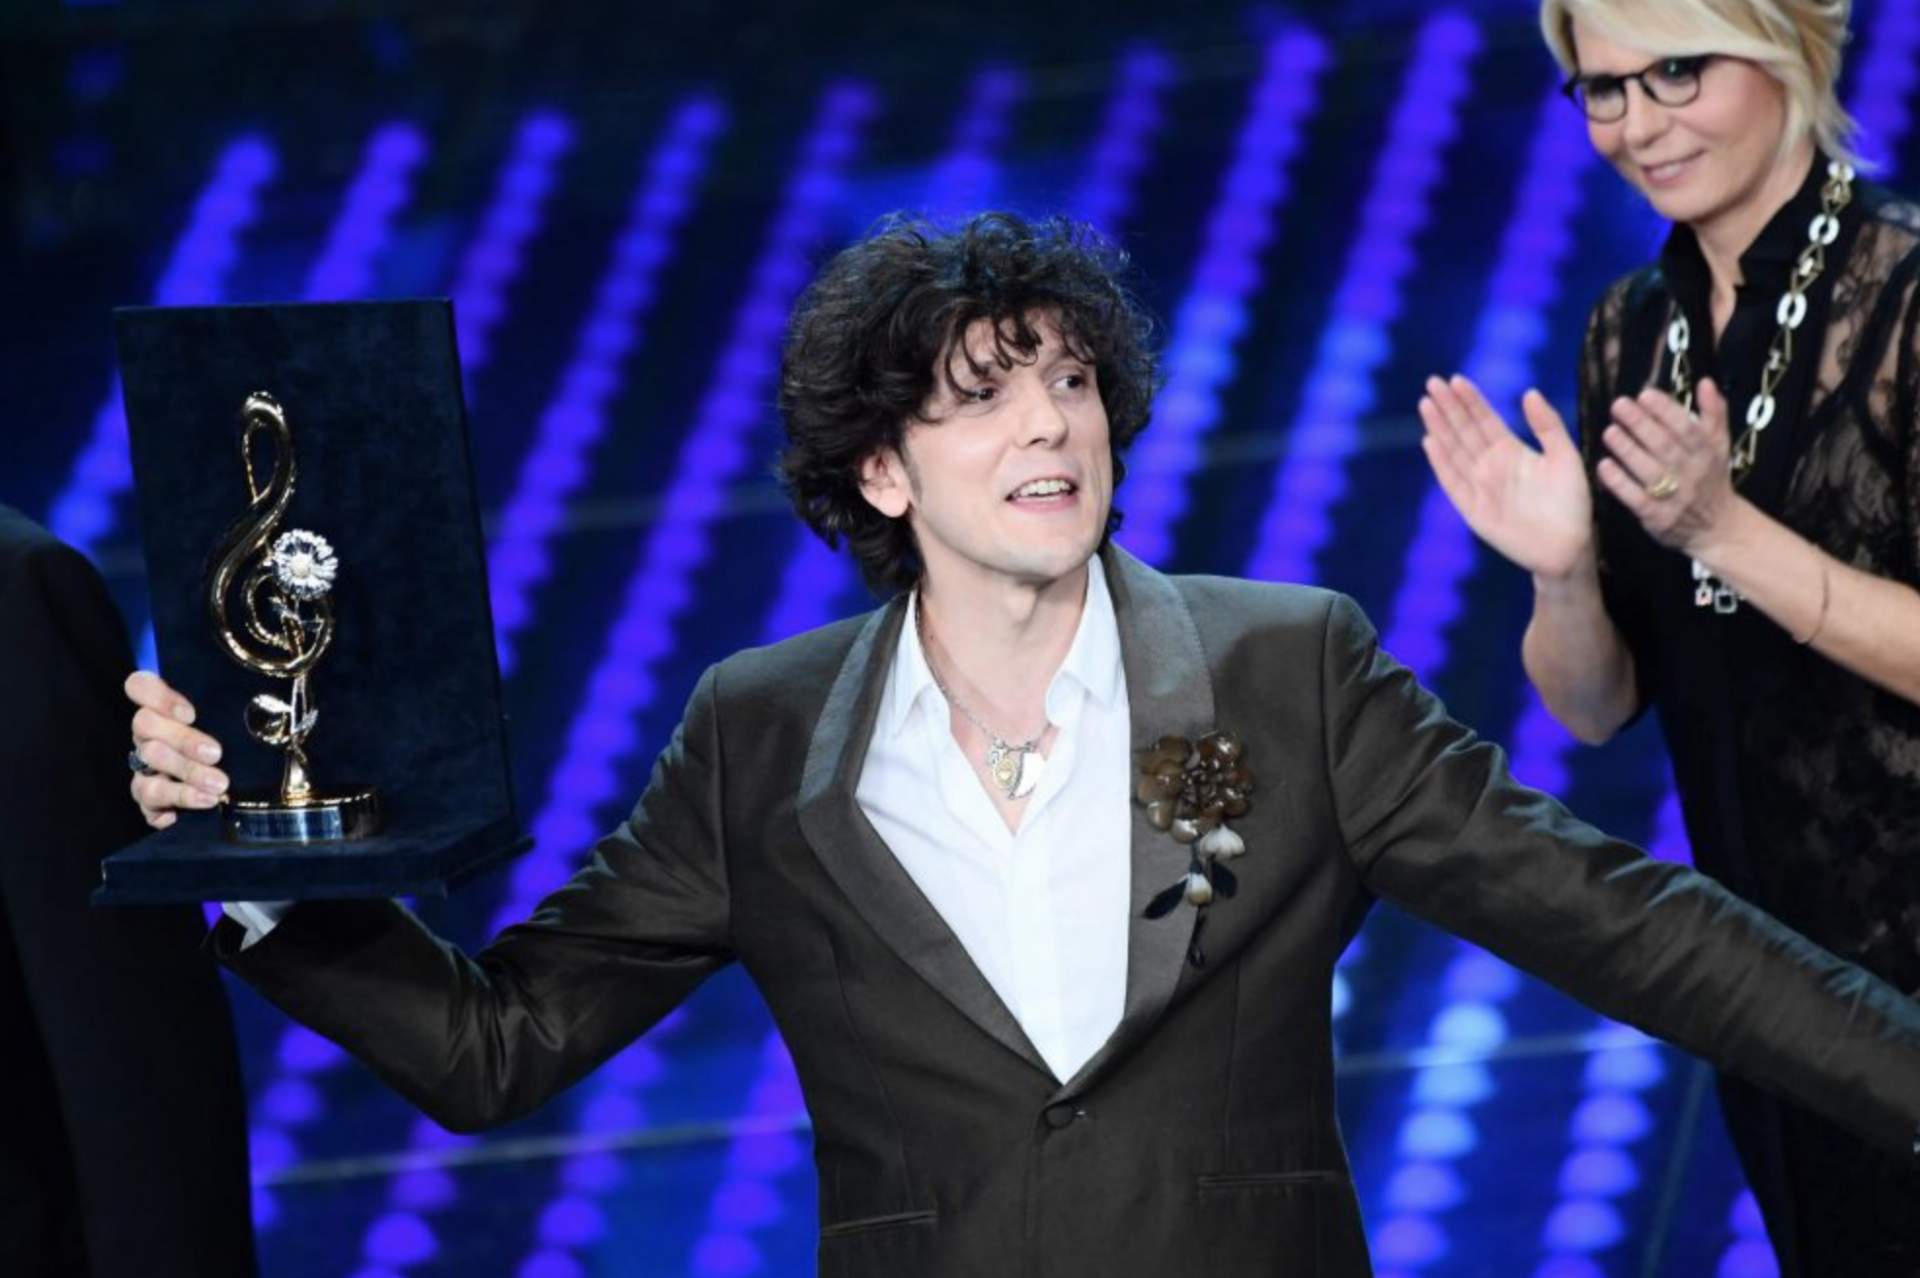 SANREMO 2017: IT'S COVER TIME!